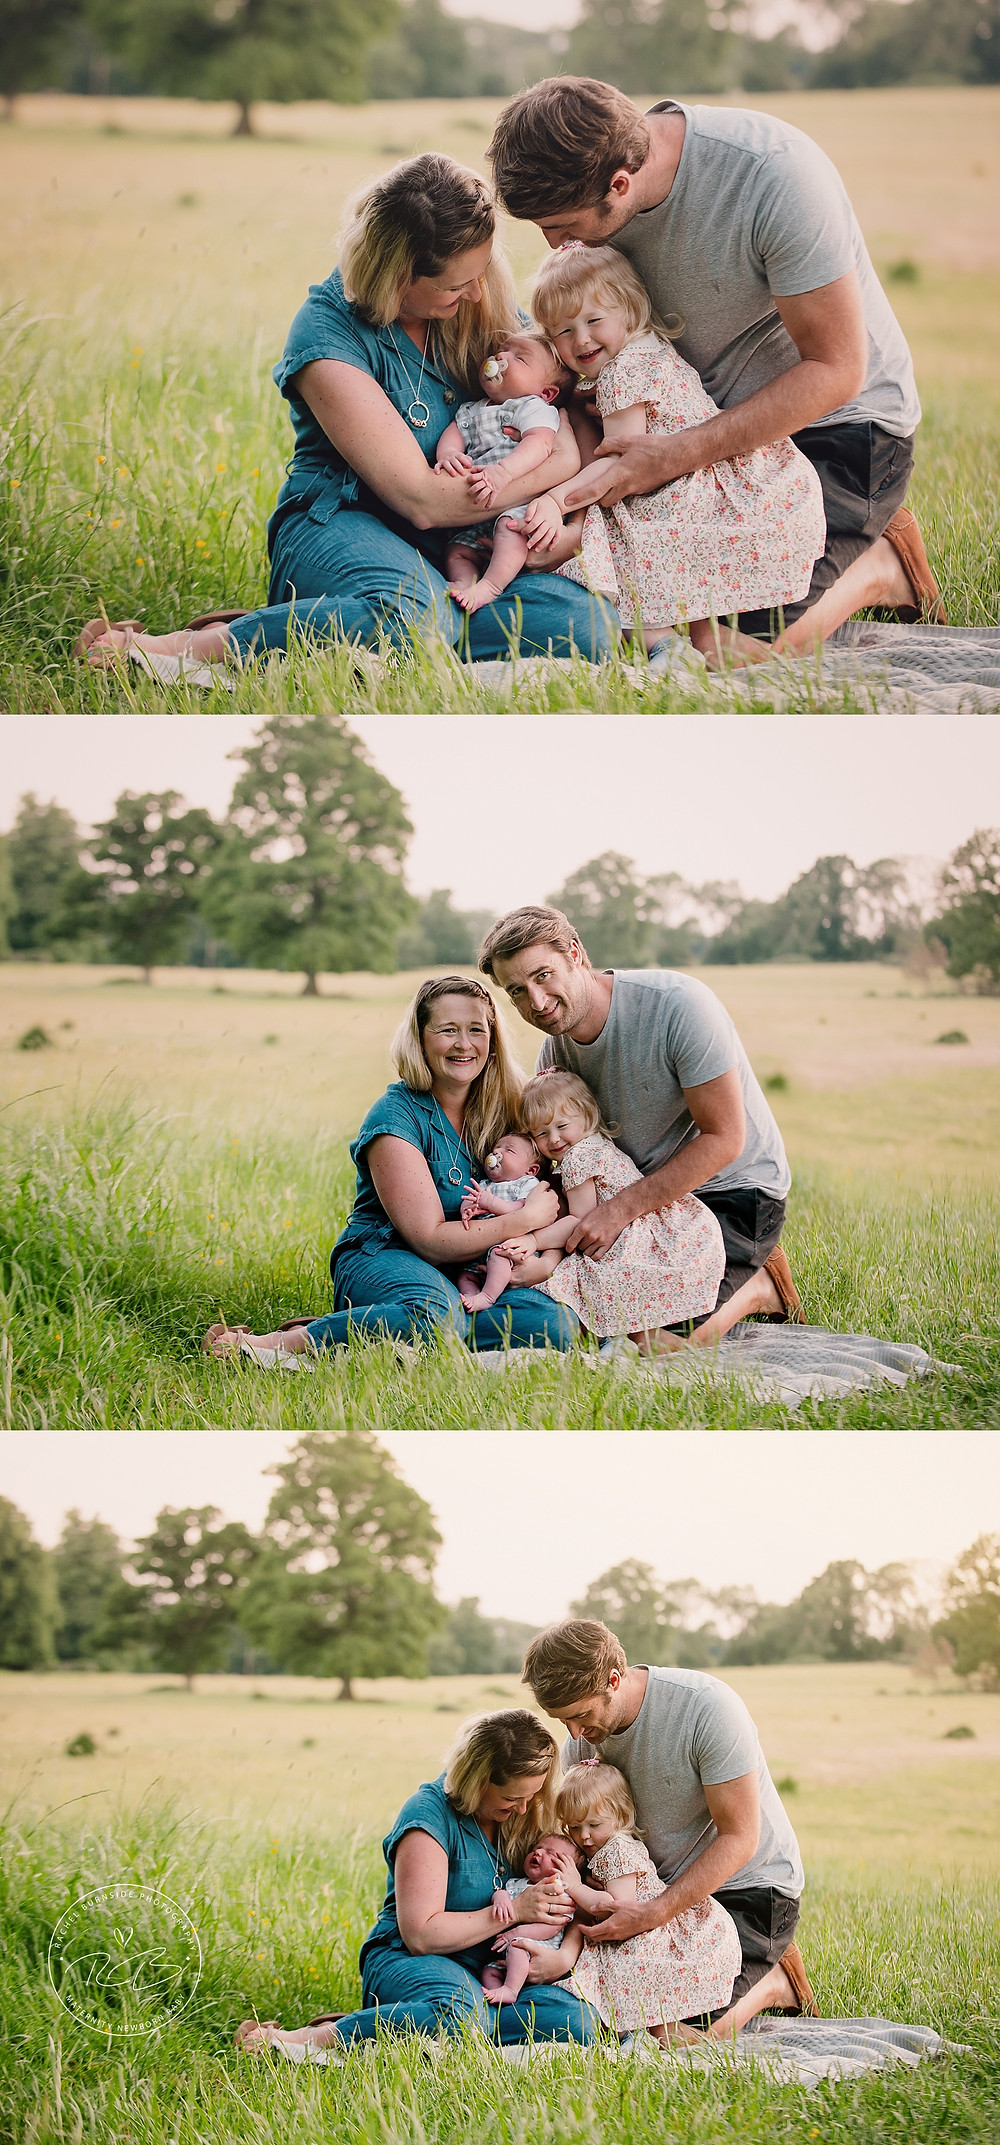 outdoor family photography session with newborn baby